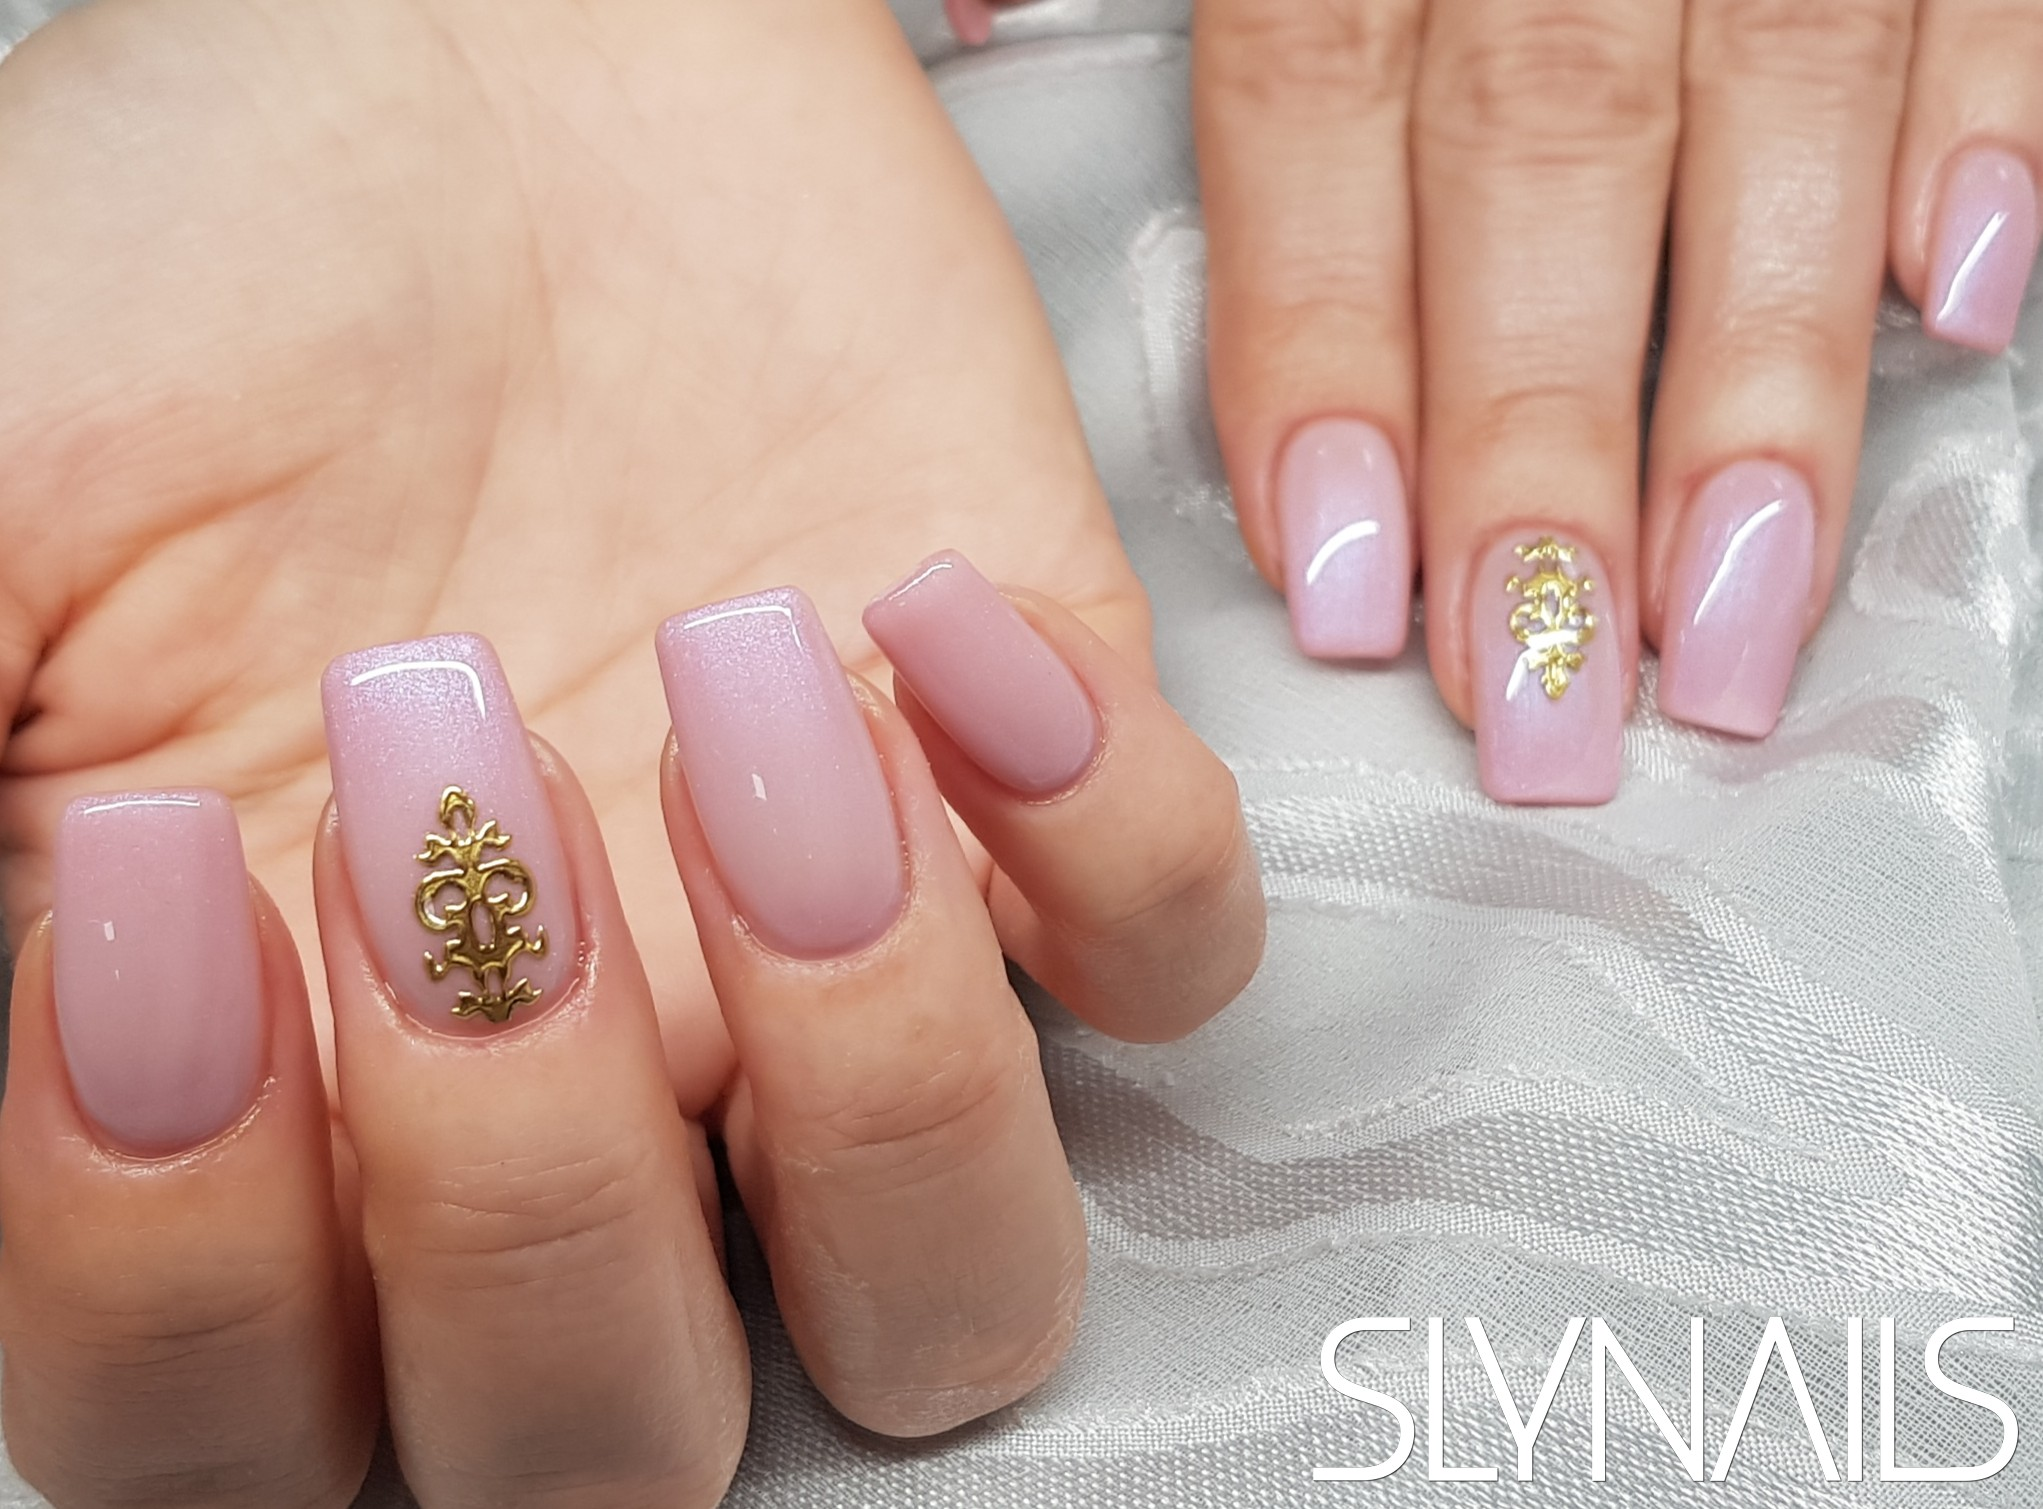 Nail extension, Square, Nude, Sticker, One color